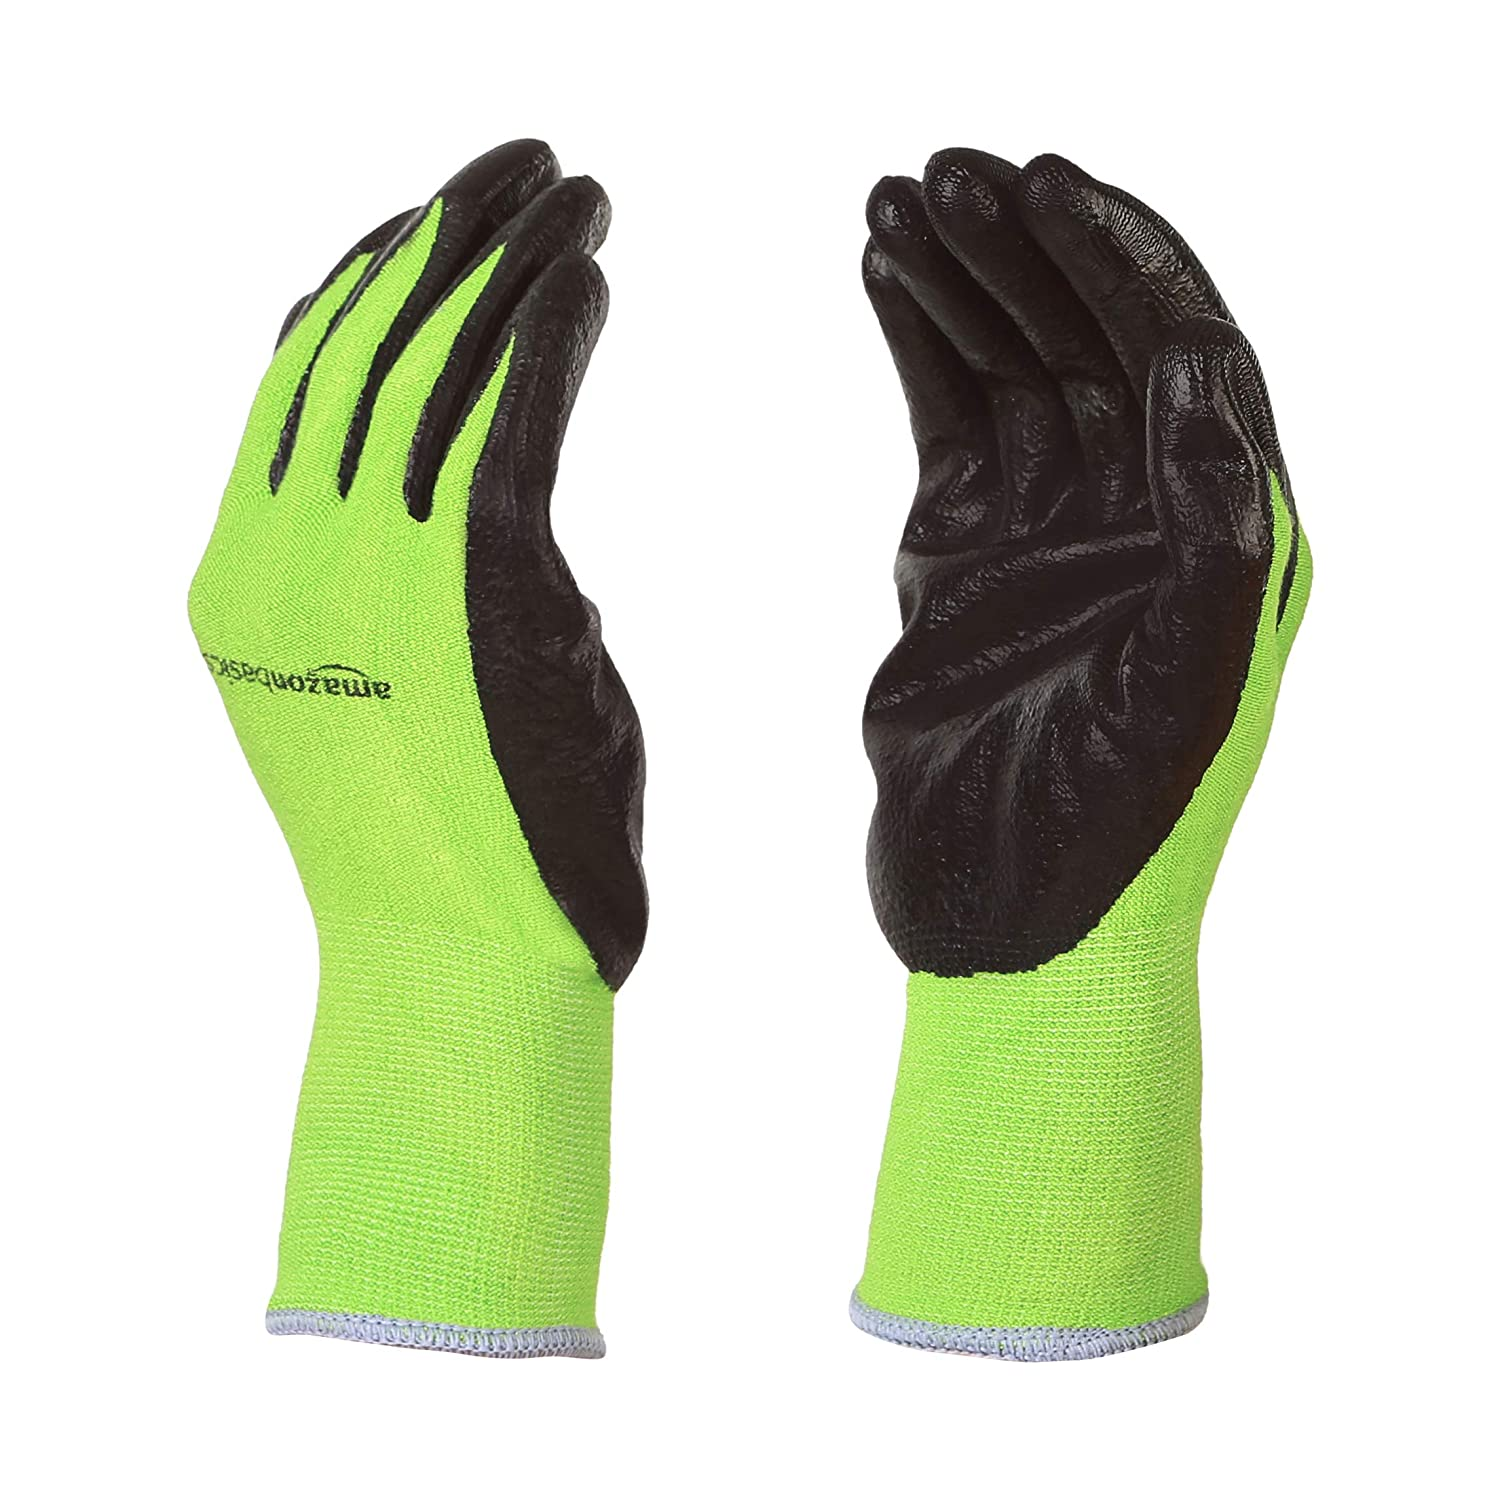 AmazonBasics Working Gloves with Touchscreen, Green, L, 5-Pair